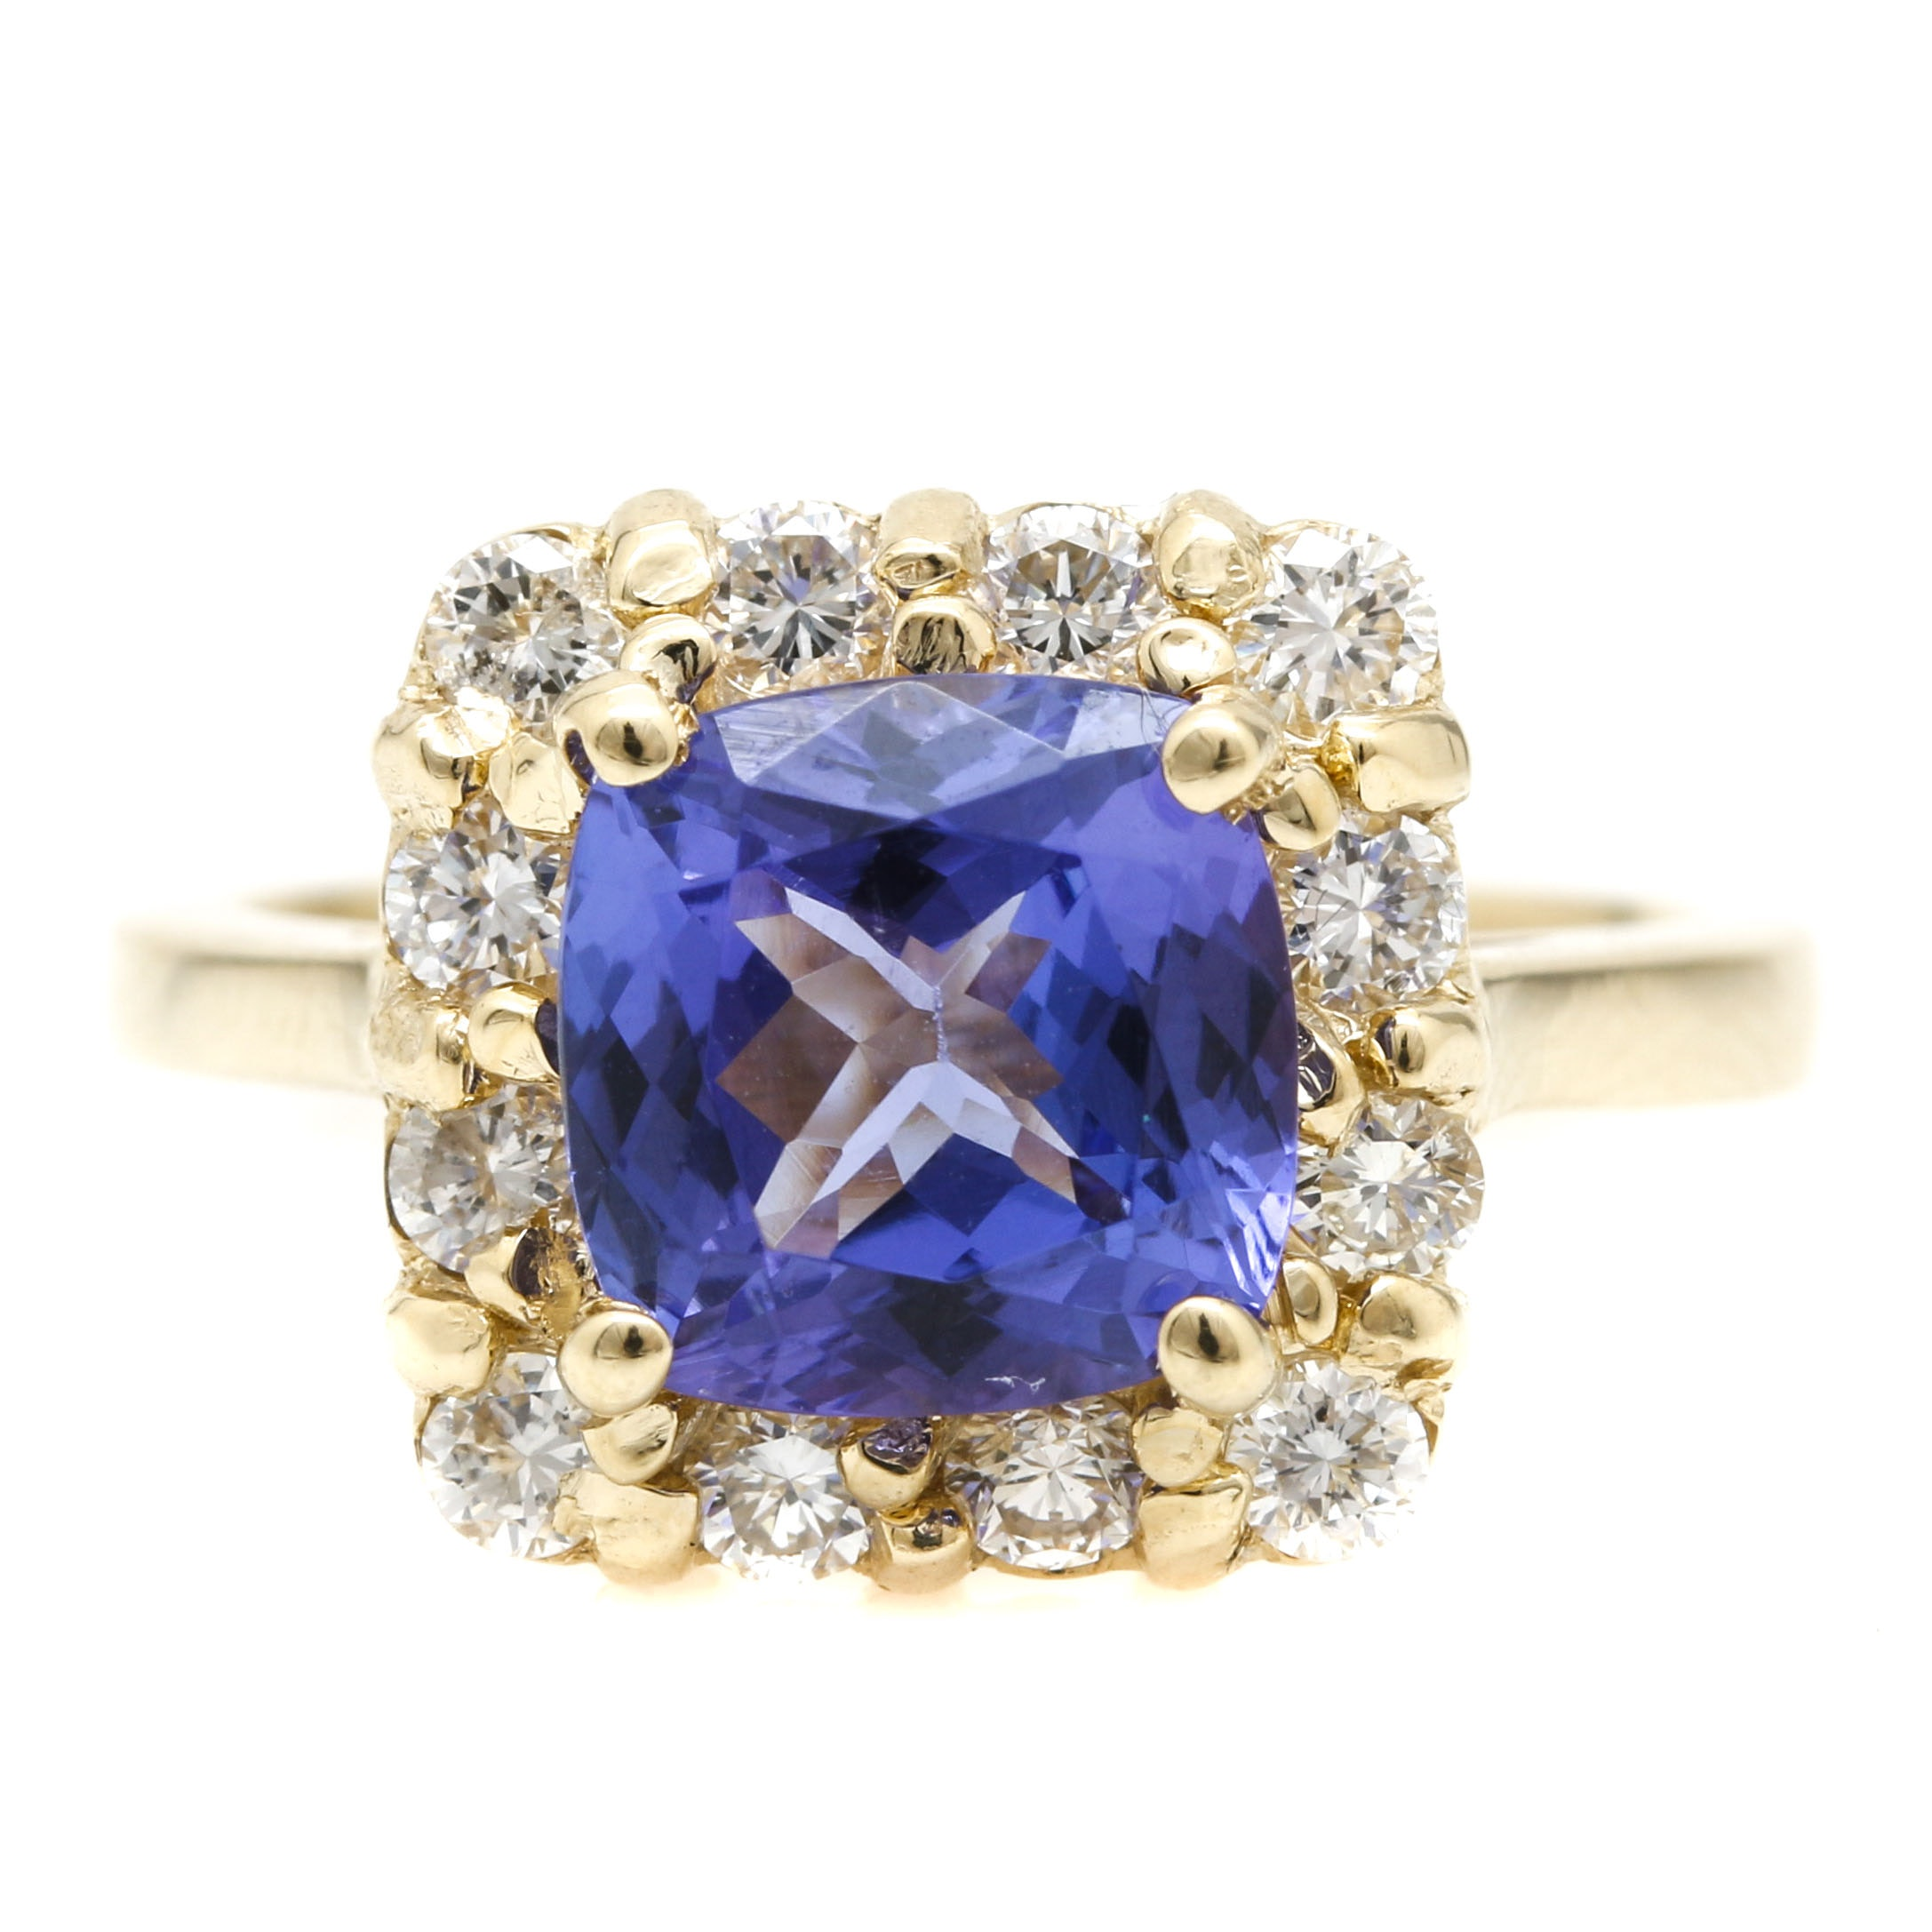 14K Yellow Gold 1.83 CT Tanzanite and Diamond Ring